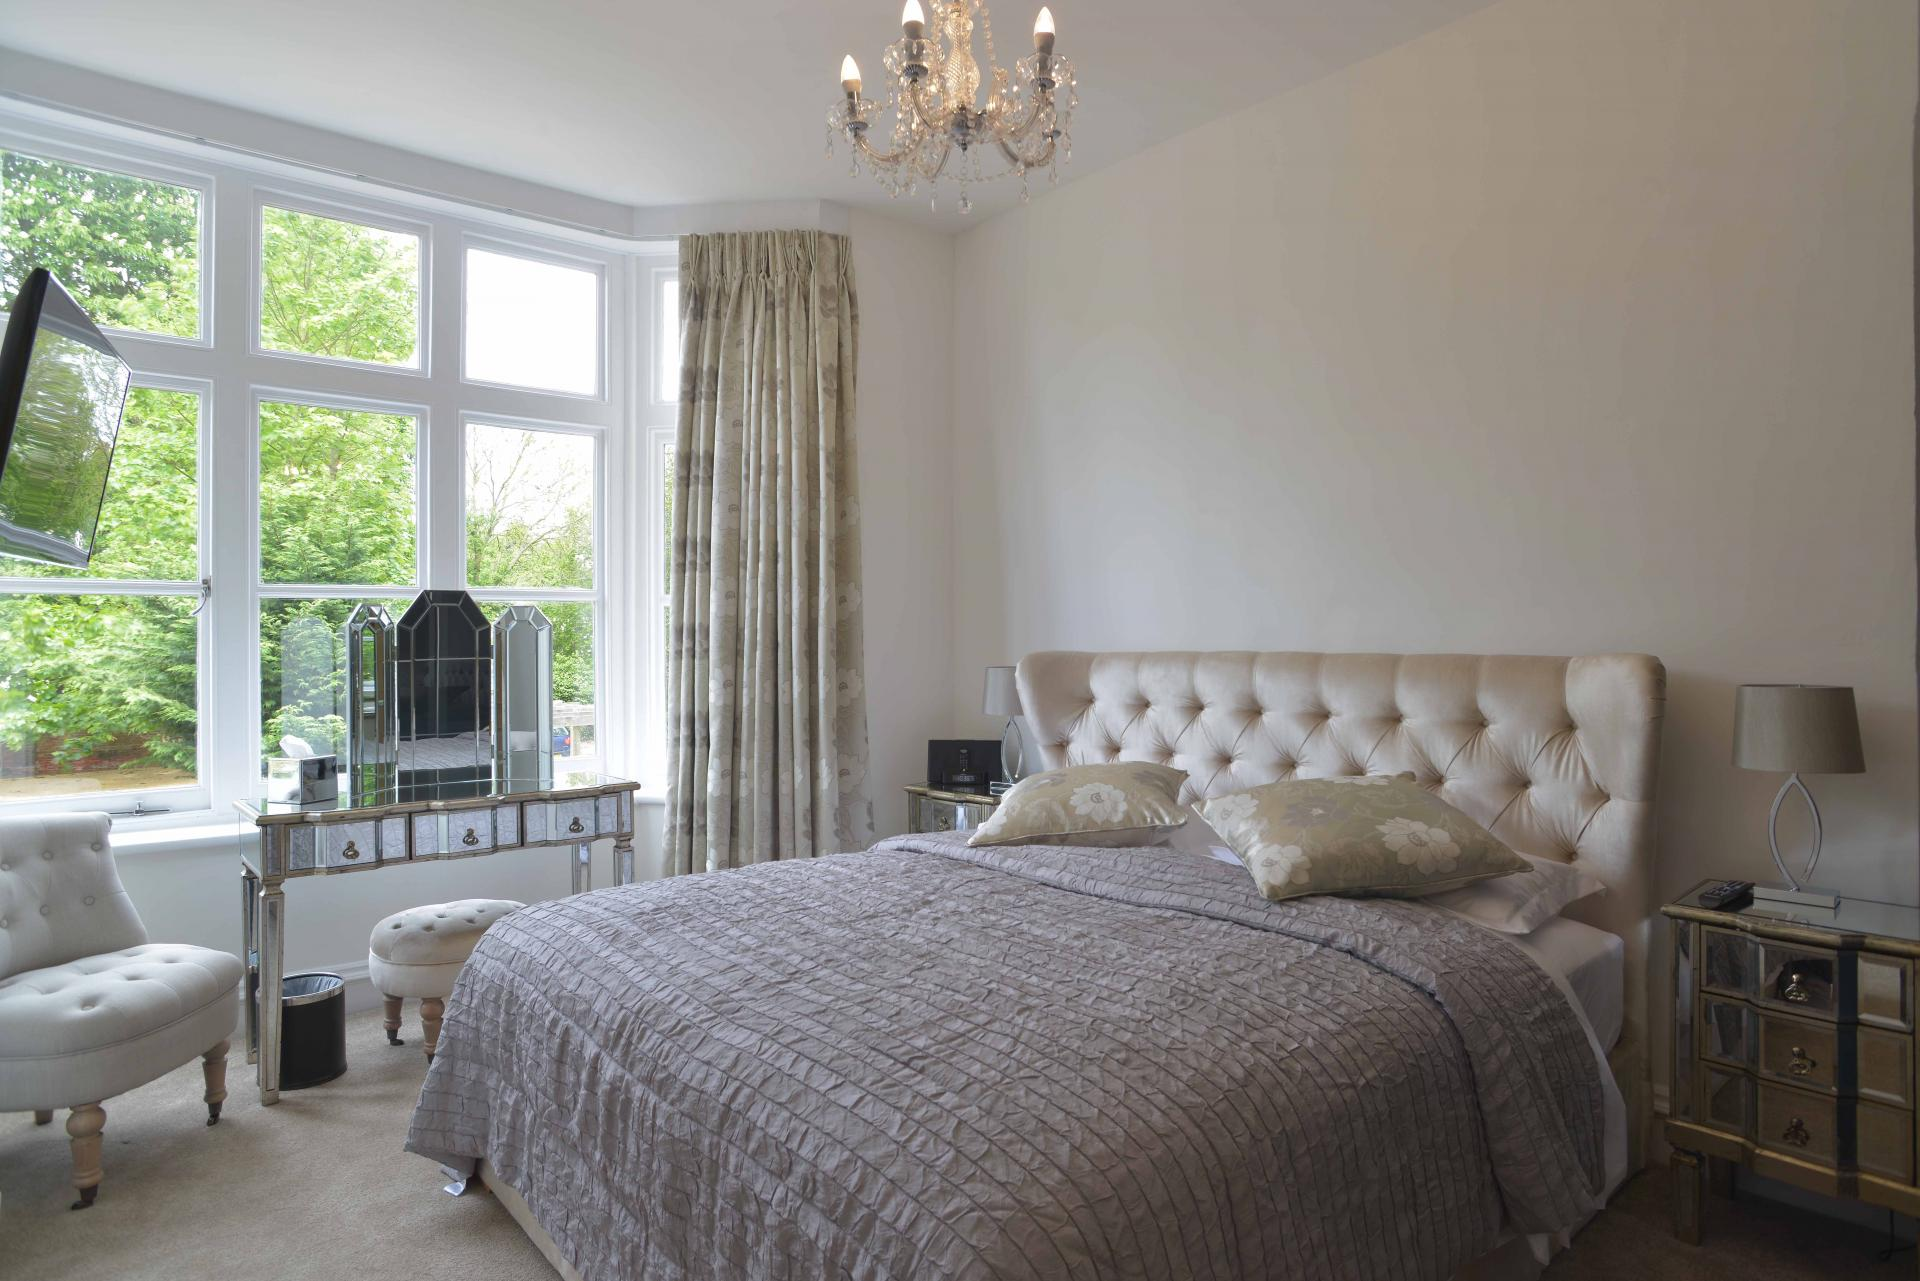 Bedroom at Hawk House, Centre, St Albans - Citybase Apartments